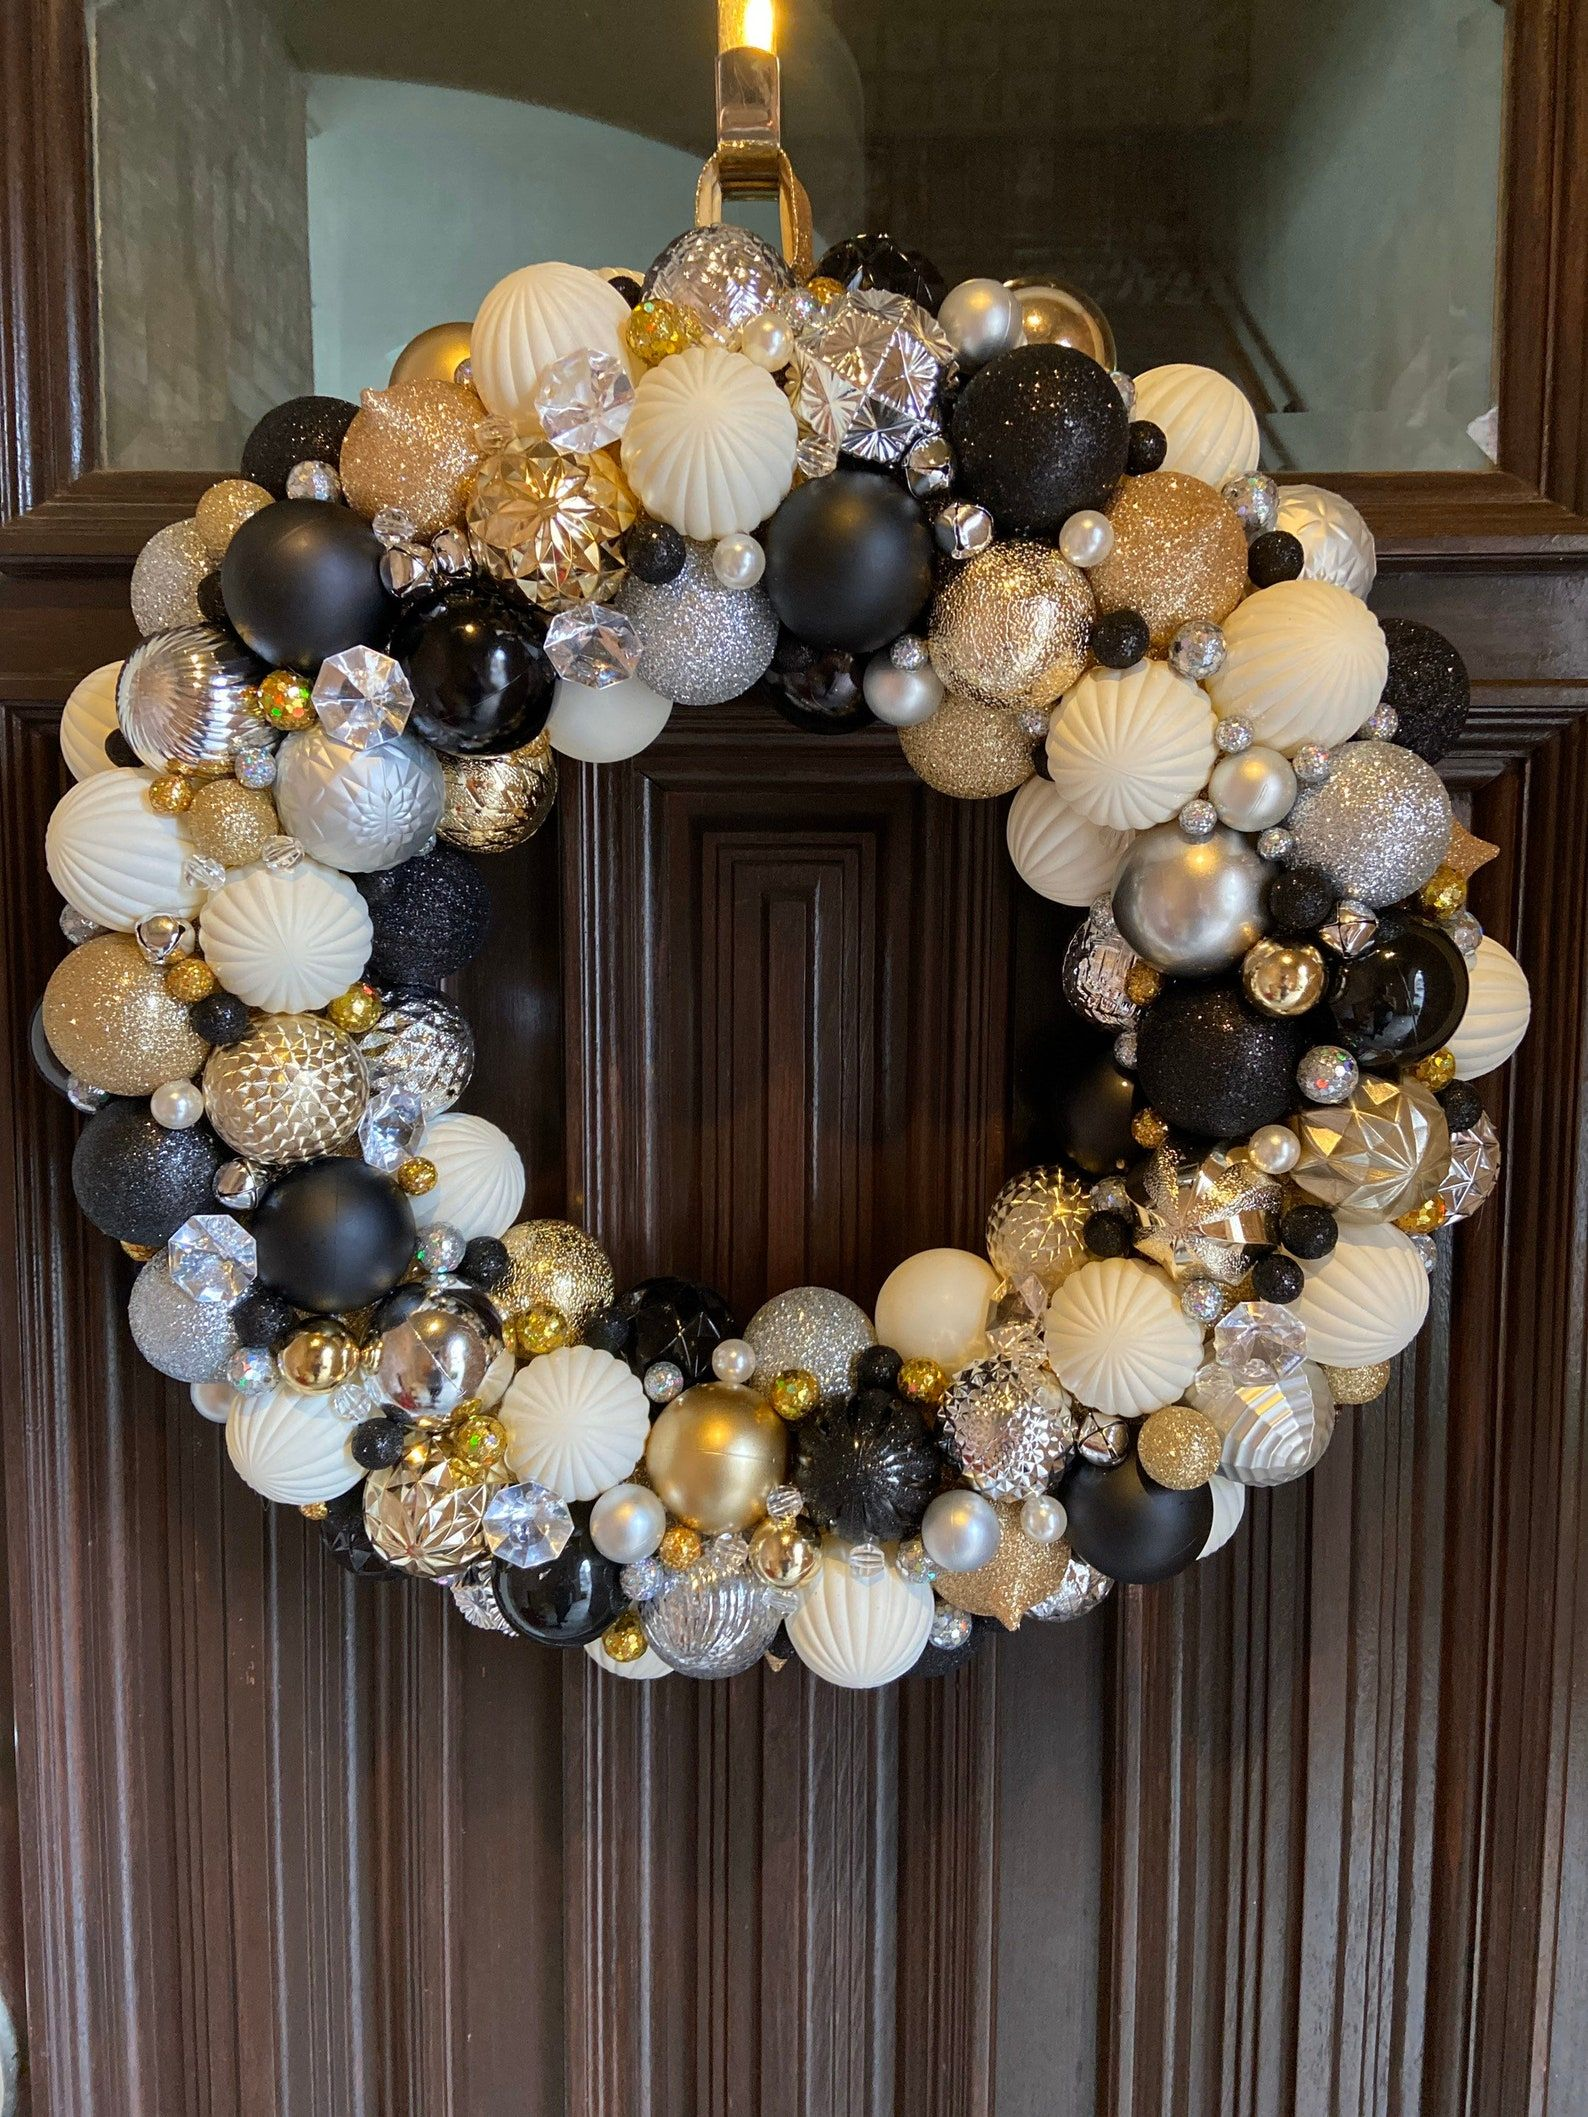 Beautiful Black Silver Gold And Cream Glam Ornament Wreath Christmas Wreath Bauble Wreath With Pearls Jewels Bells Holiday Decor Black White And Gold Christmas Silver Christmas Decorations Bauble Wreath